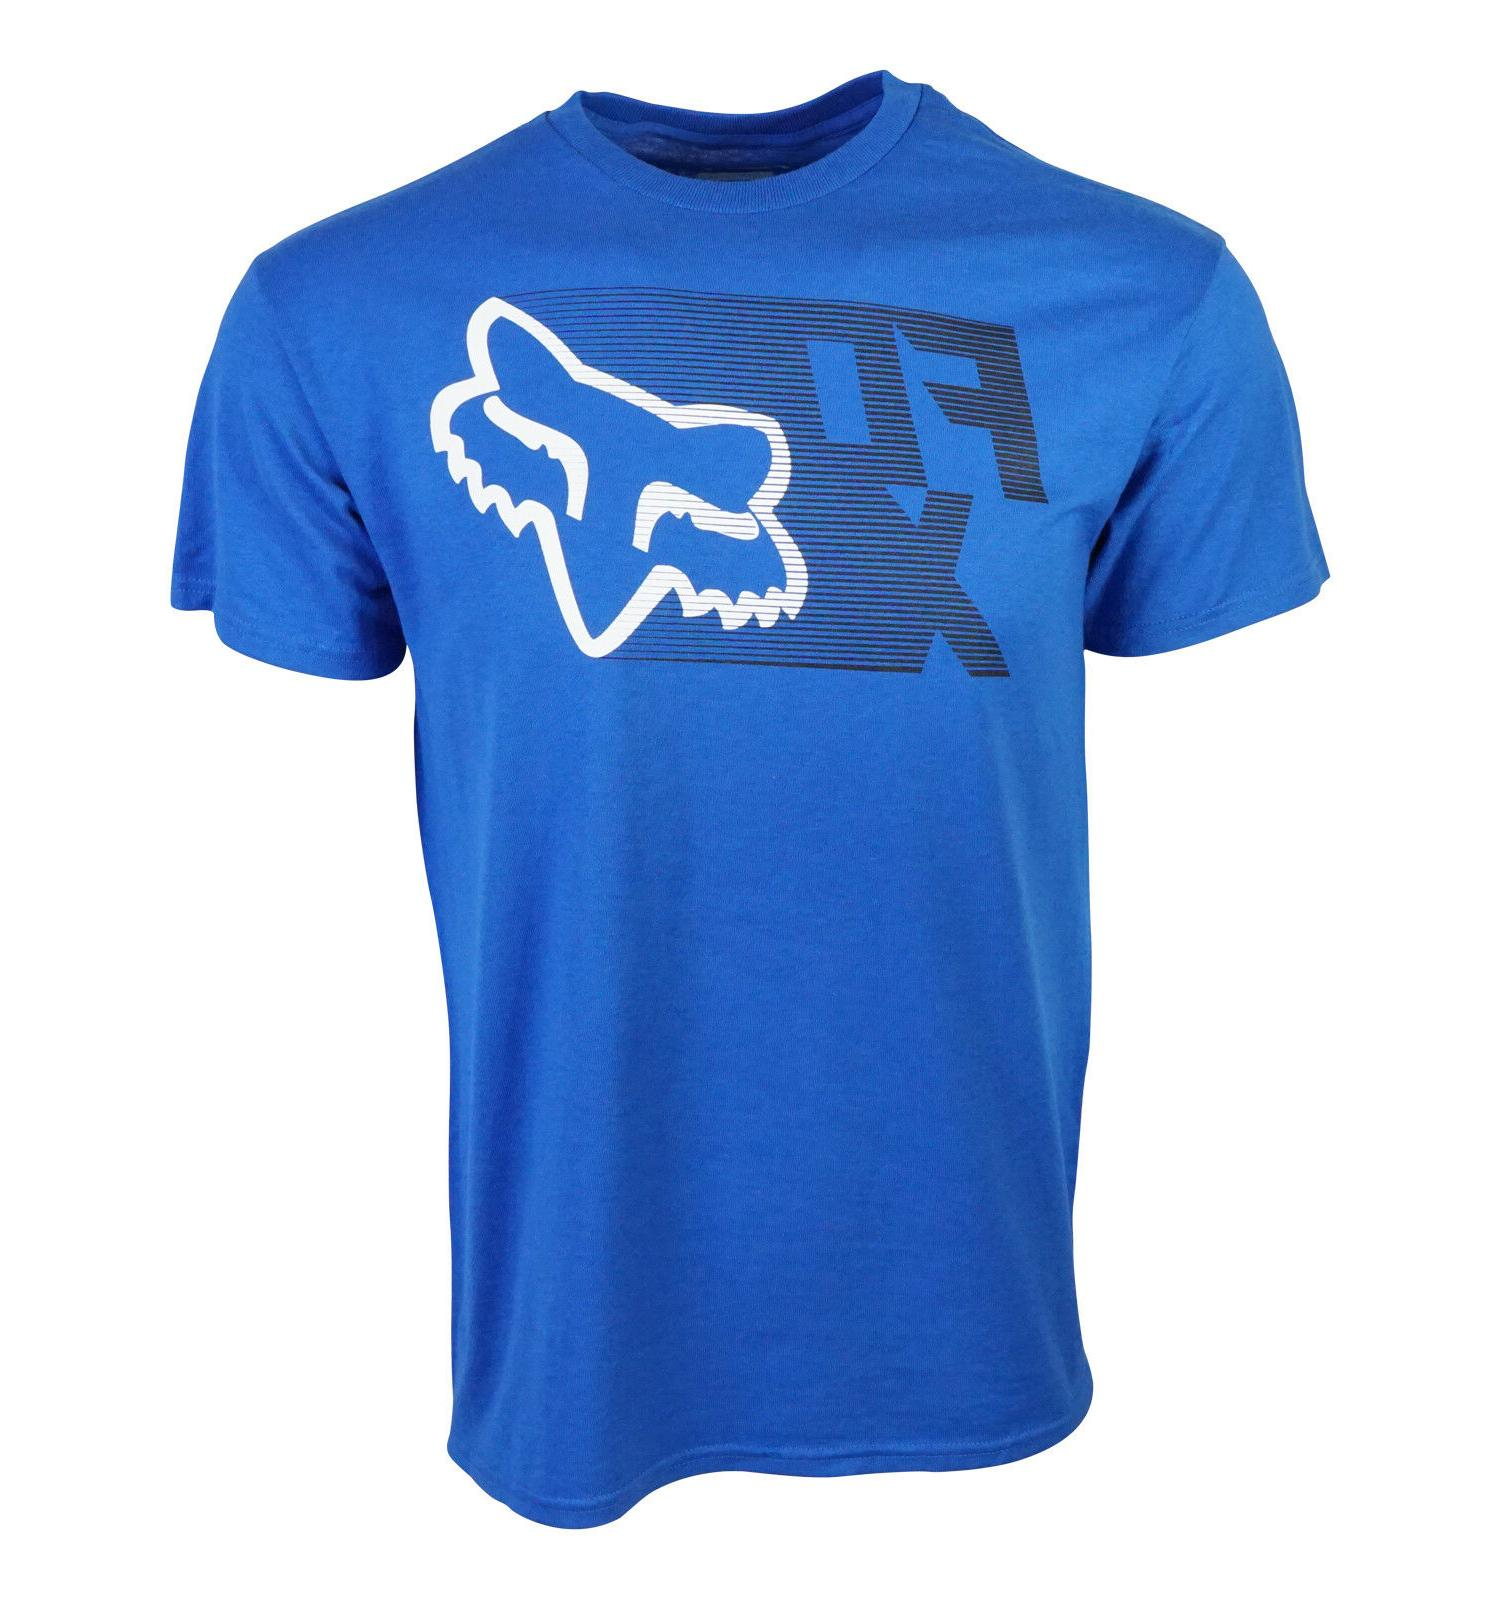 mens blue t shirt